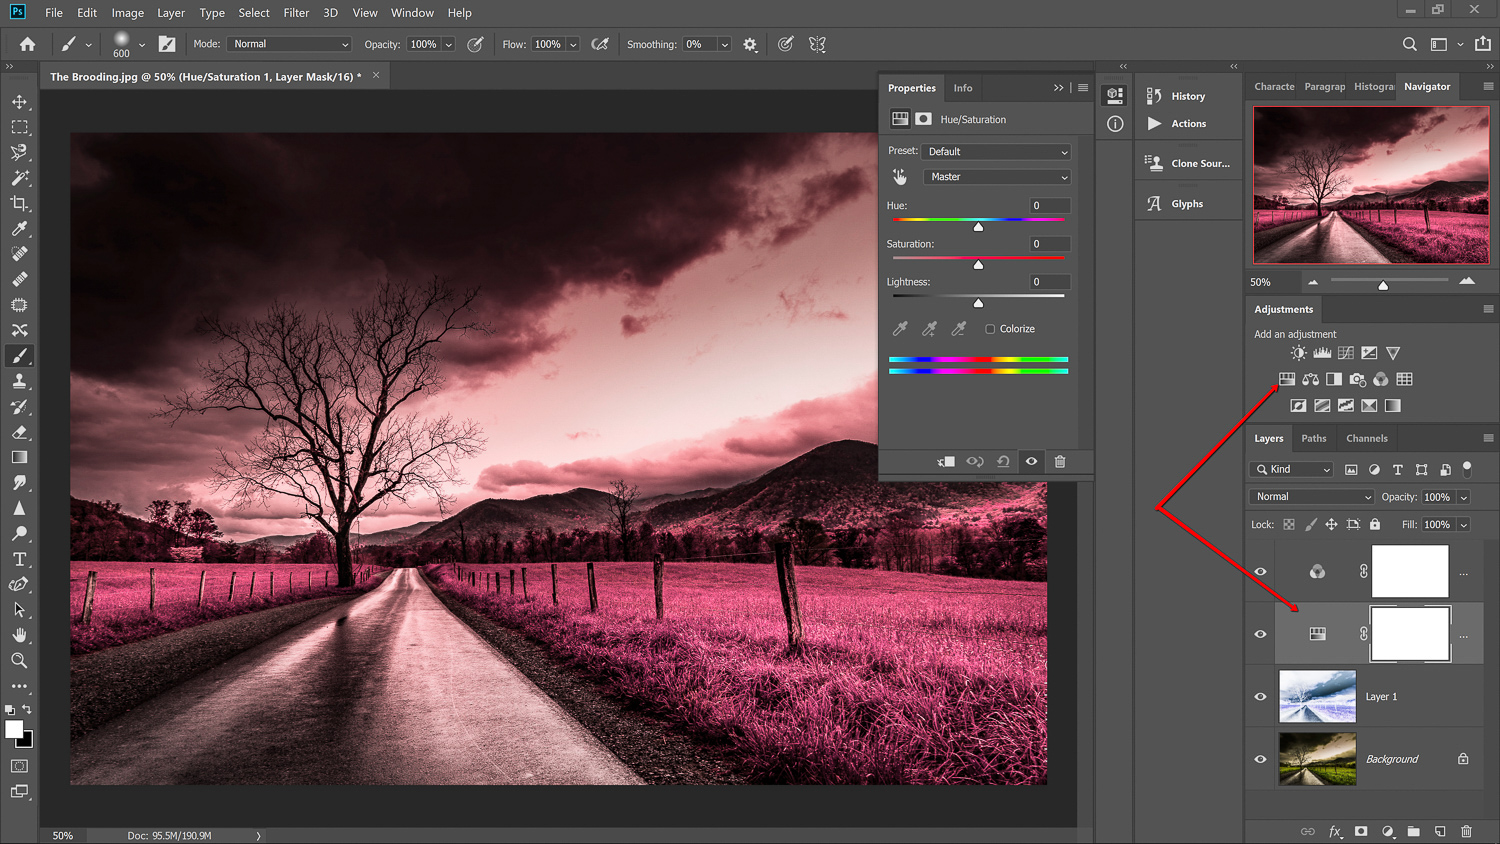 Infrared photography in Photoshop